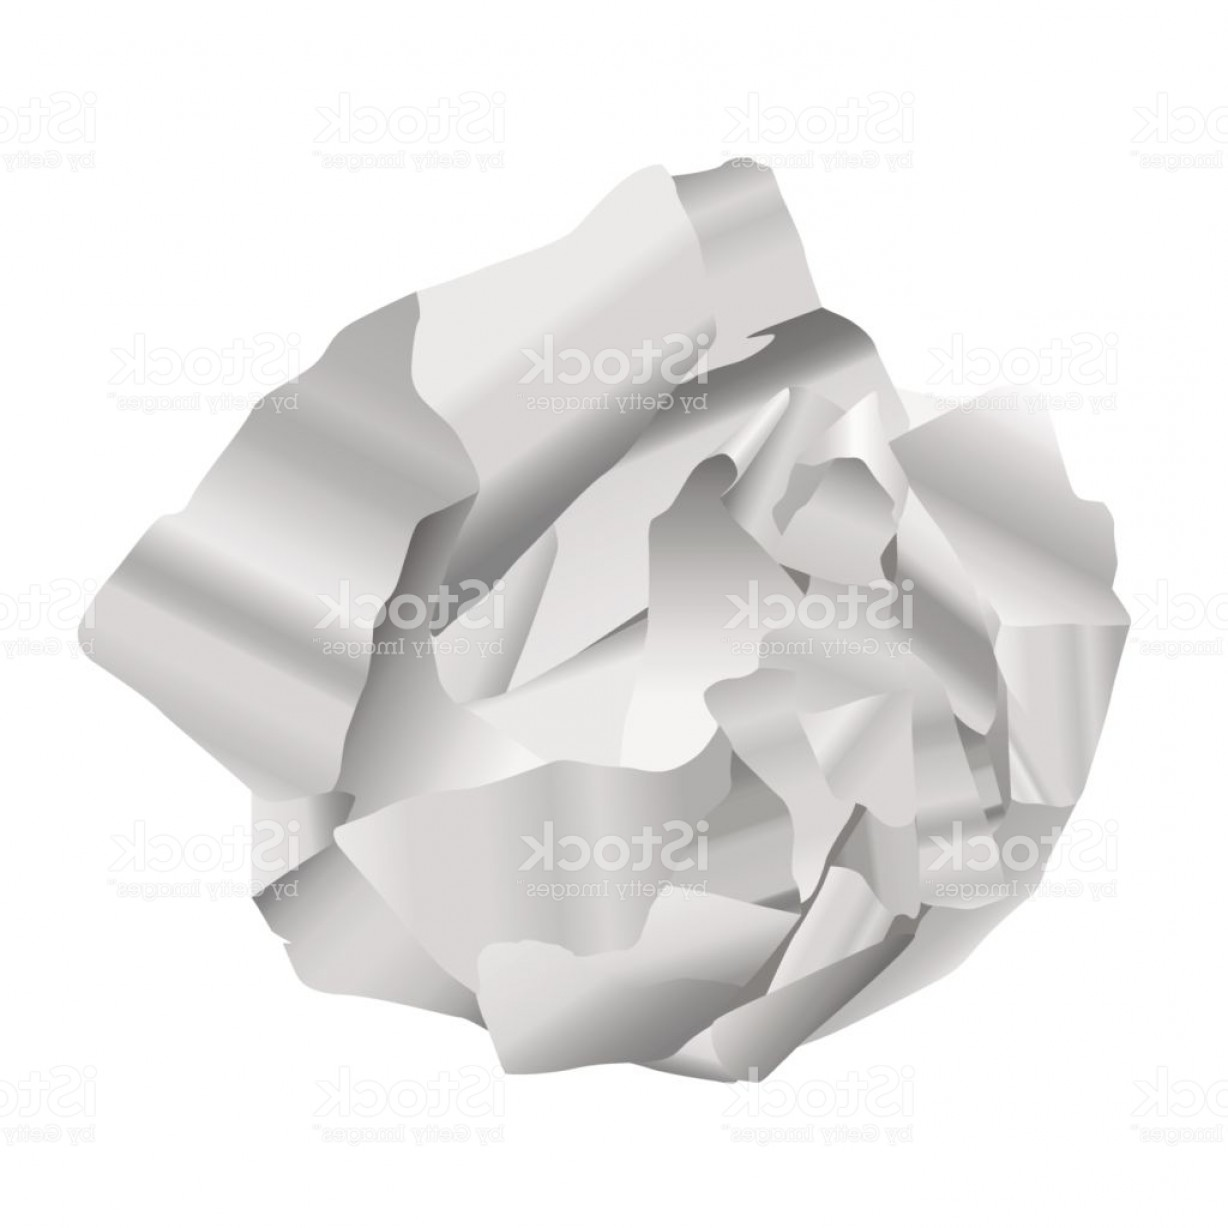 Crinkled Paper Vector: Vector Realistic Crumpled Paper Isolated On White Background Gm